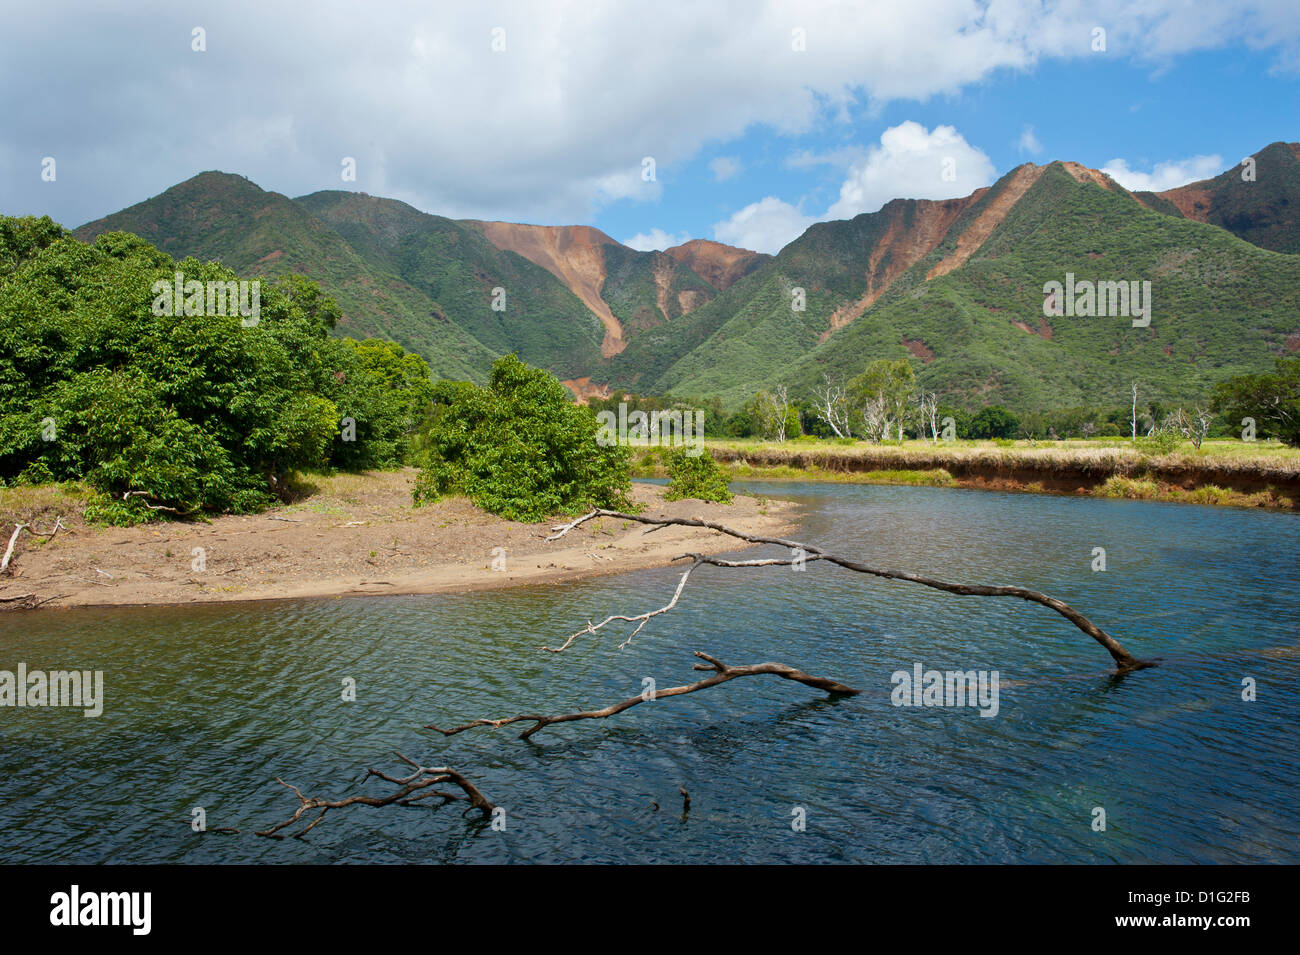 East coast of Grande Terre, New Caledonia, Melanesia, South Pacific, Pacific - Stock Image